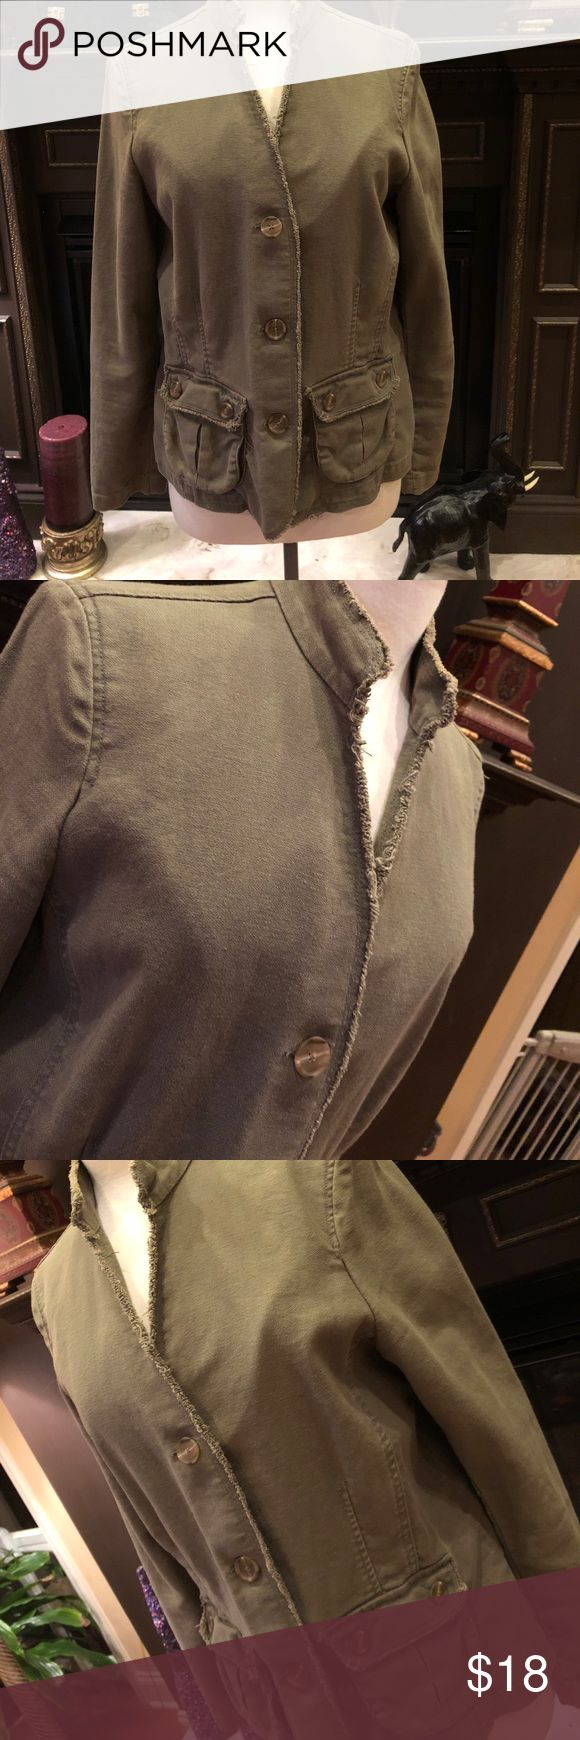 Old Navy army green jean jacket Very lightly worn. No holes or stains. In  perfect preowned condition. Army green in color. This material is a little stretchy Old Navy Jackets & Coats Jean Jackets